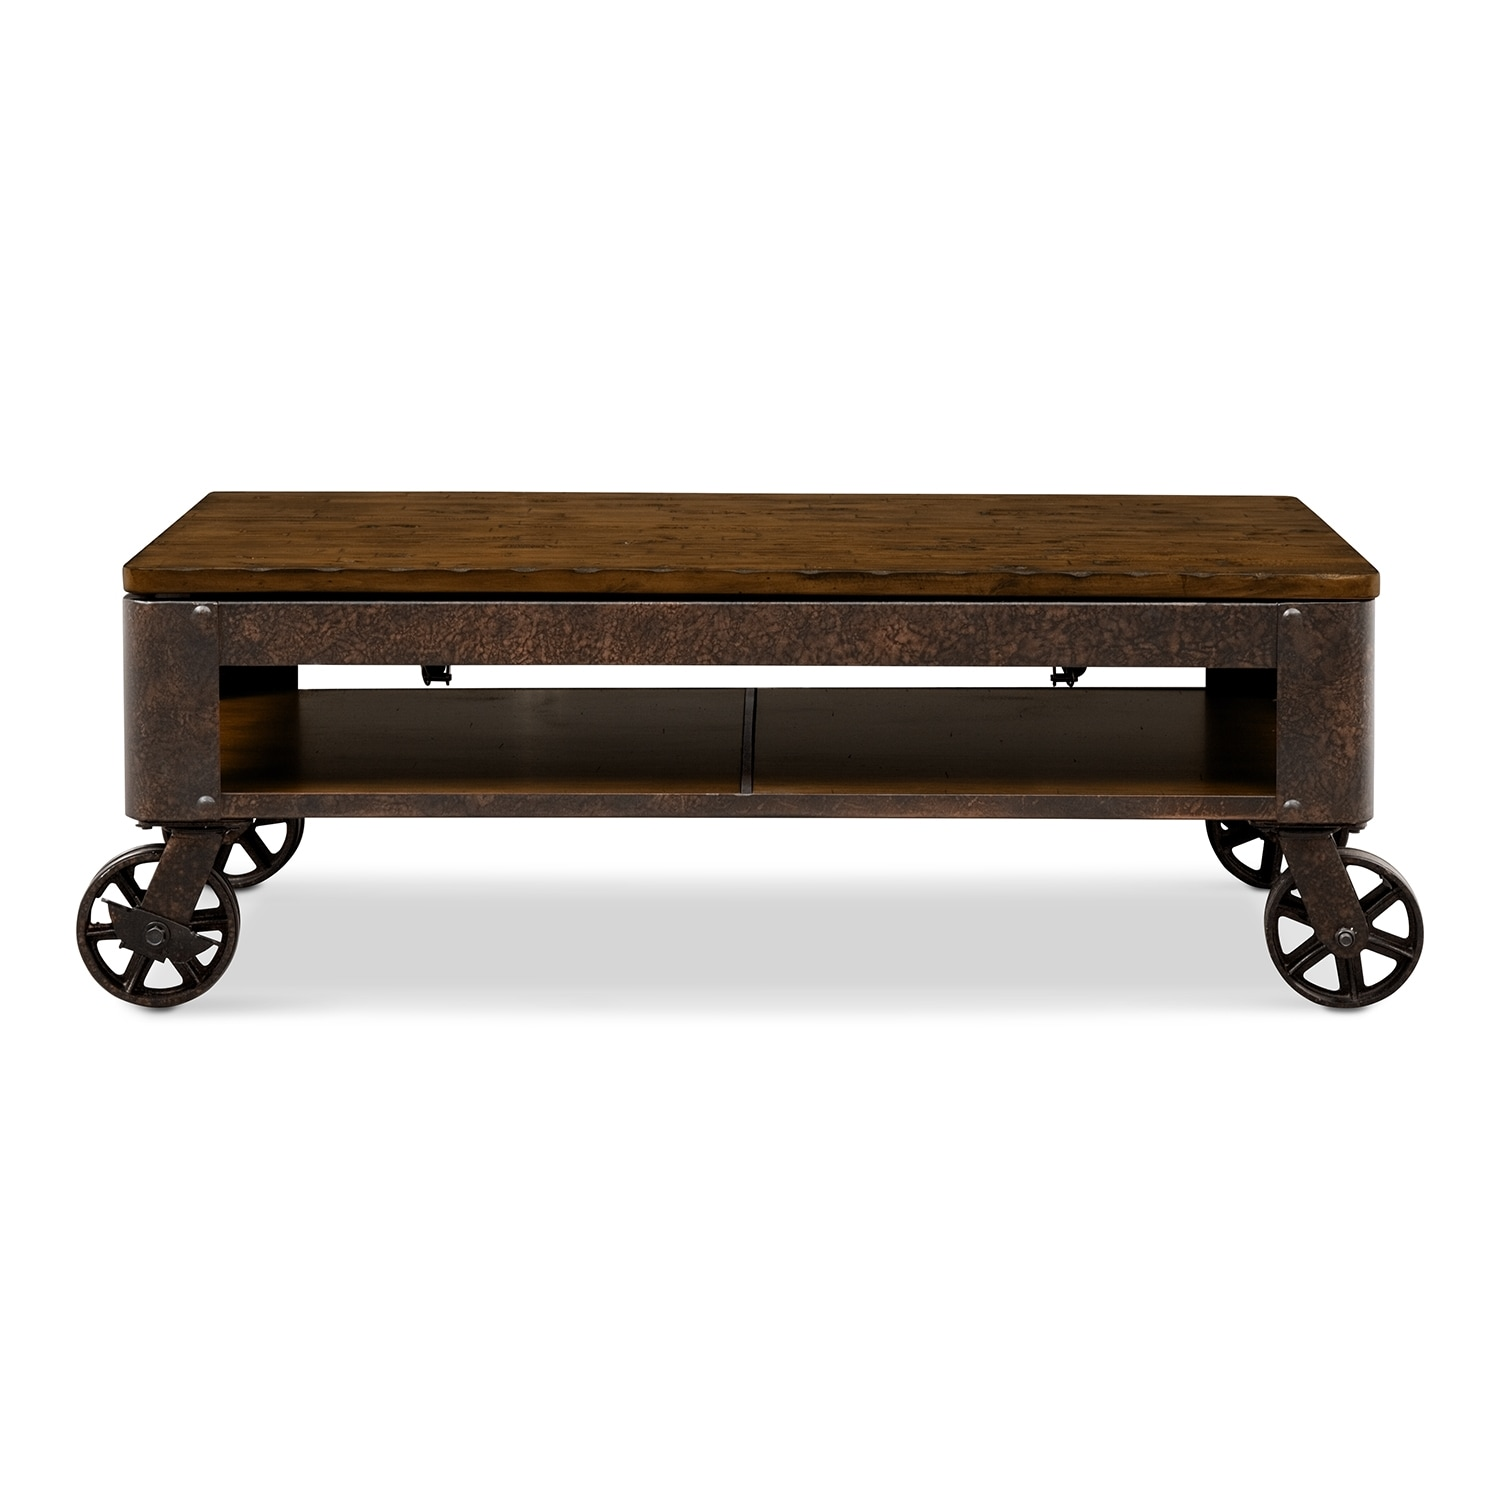 shortline lift top cocktail table value city furniture bt2 8 rustic wood furniture